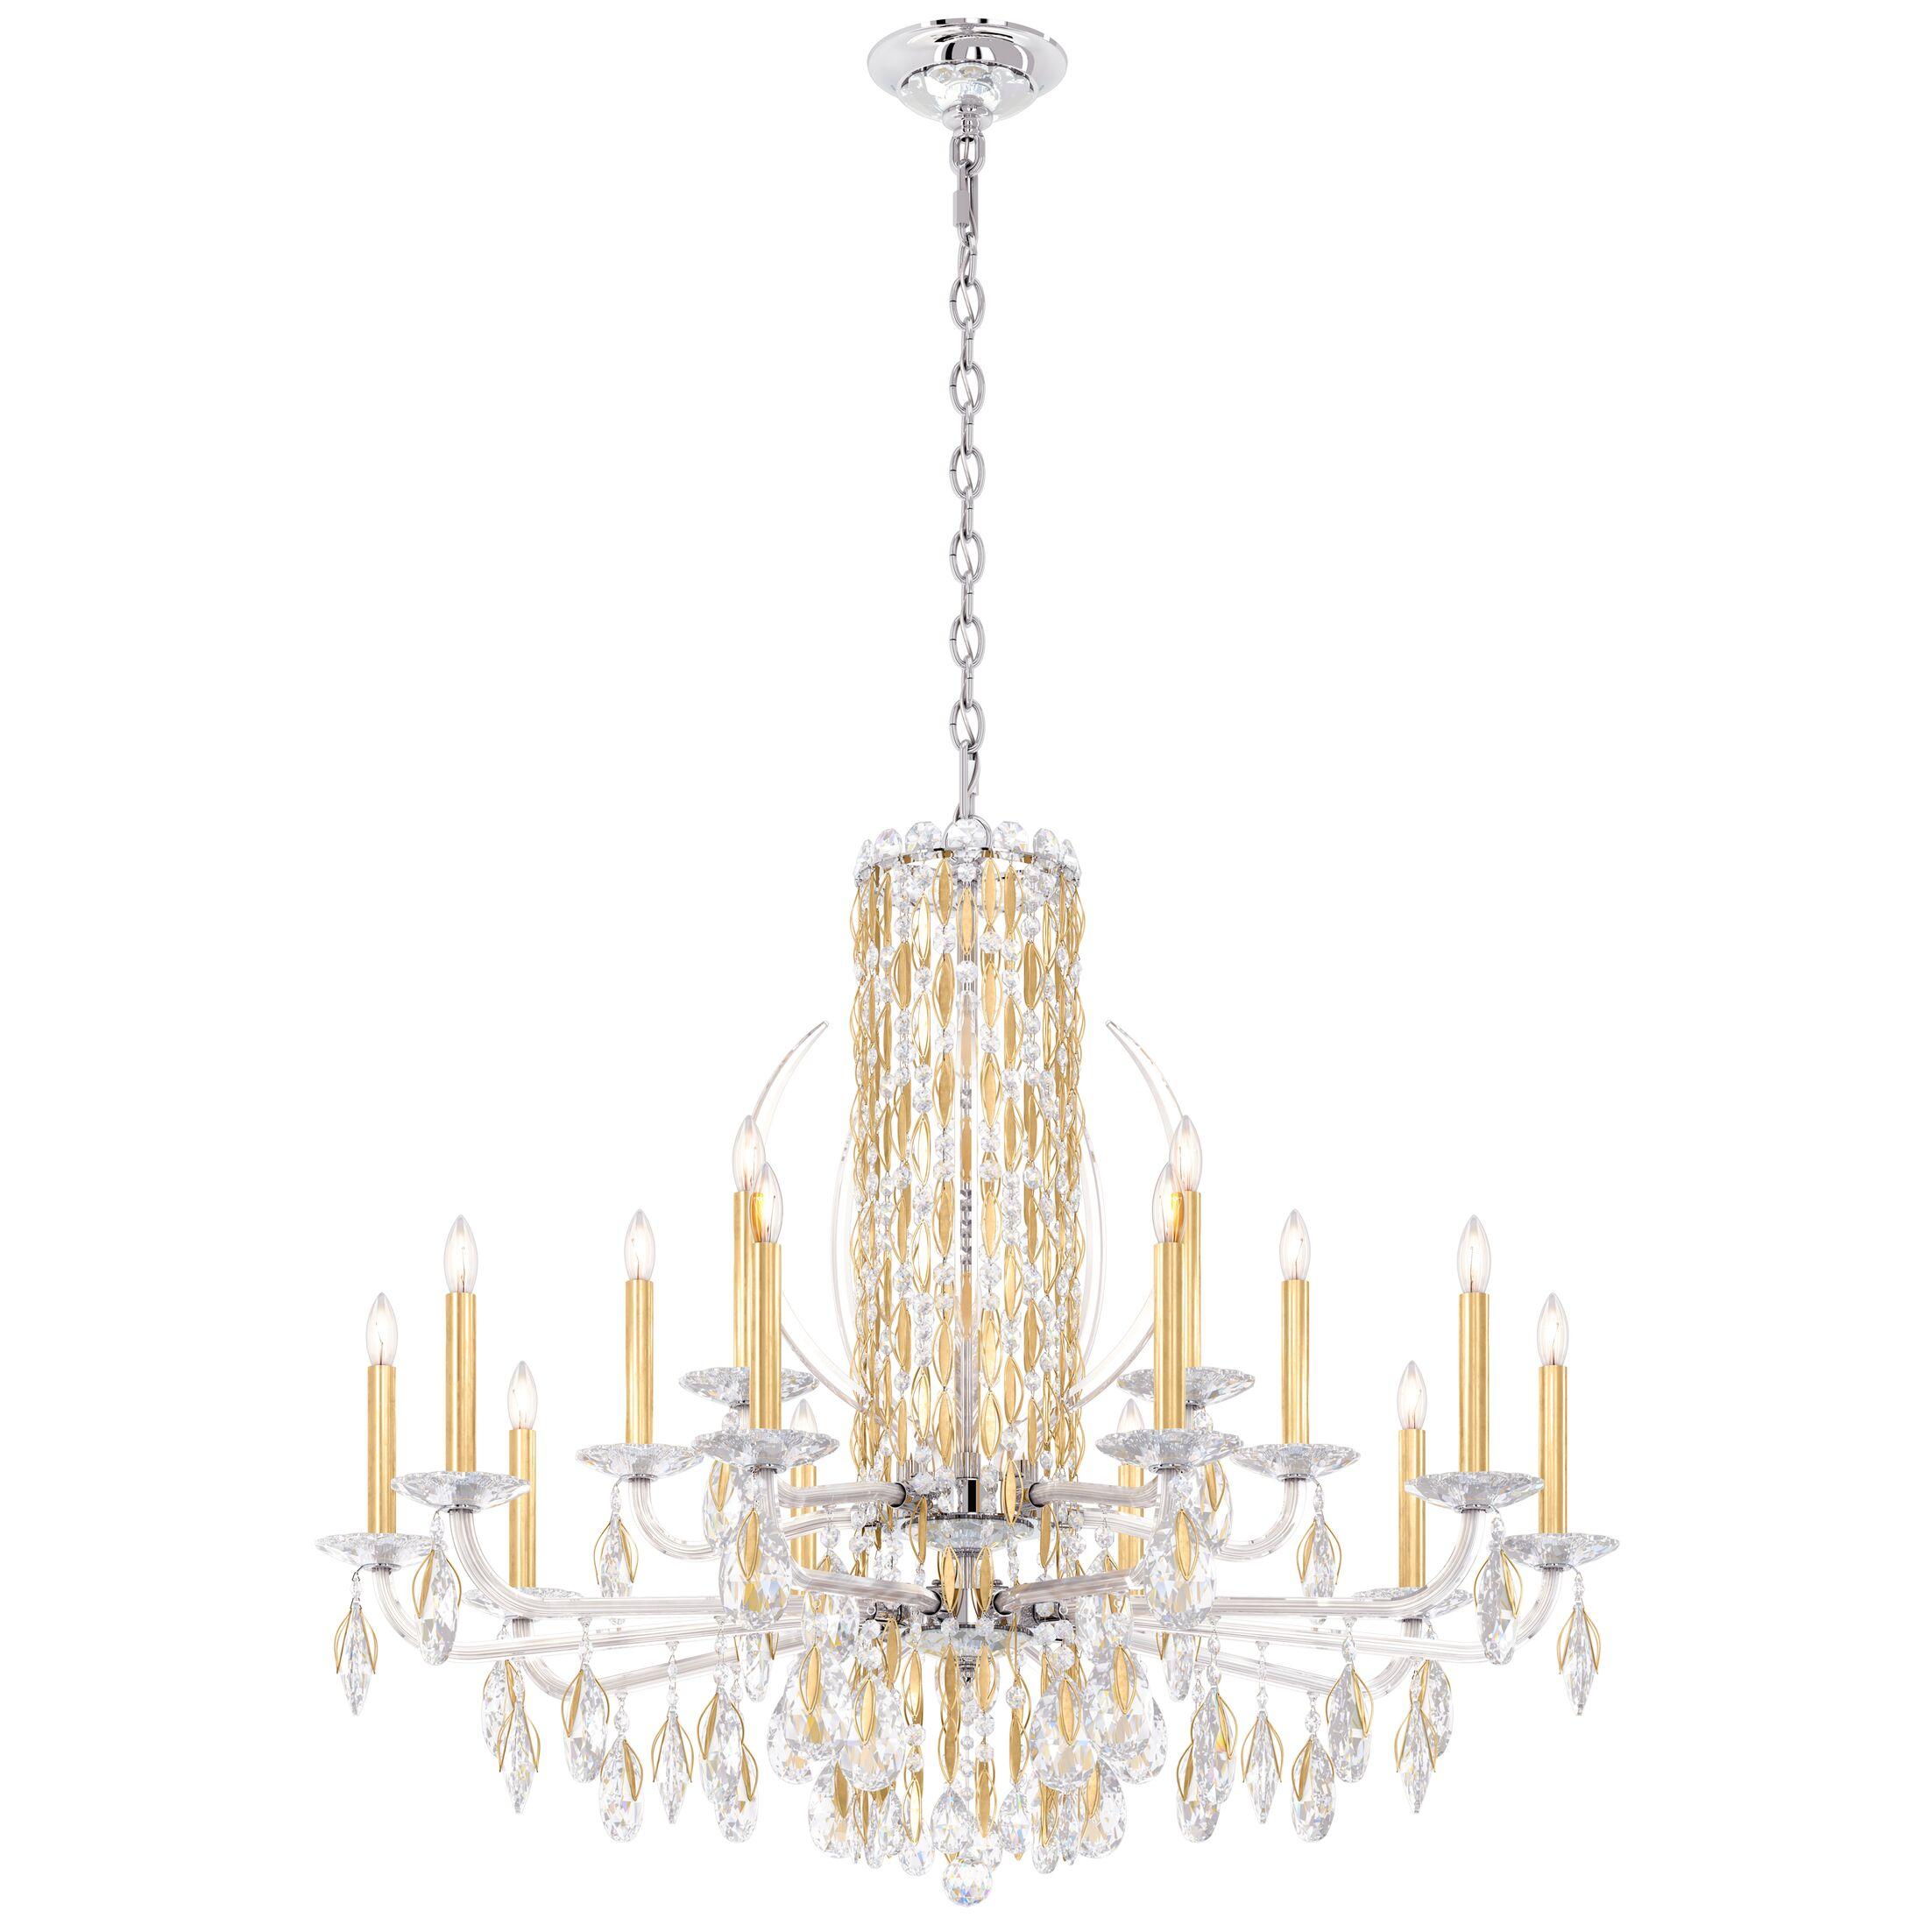 Sarella 15-Light Chandelier Finish: Antique Silver, Crystal: Spectra Crystal Clear